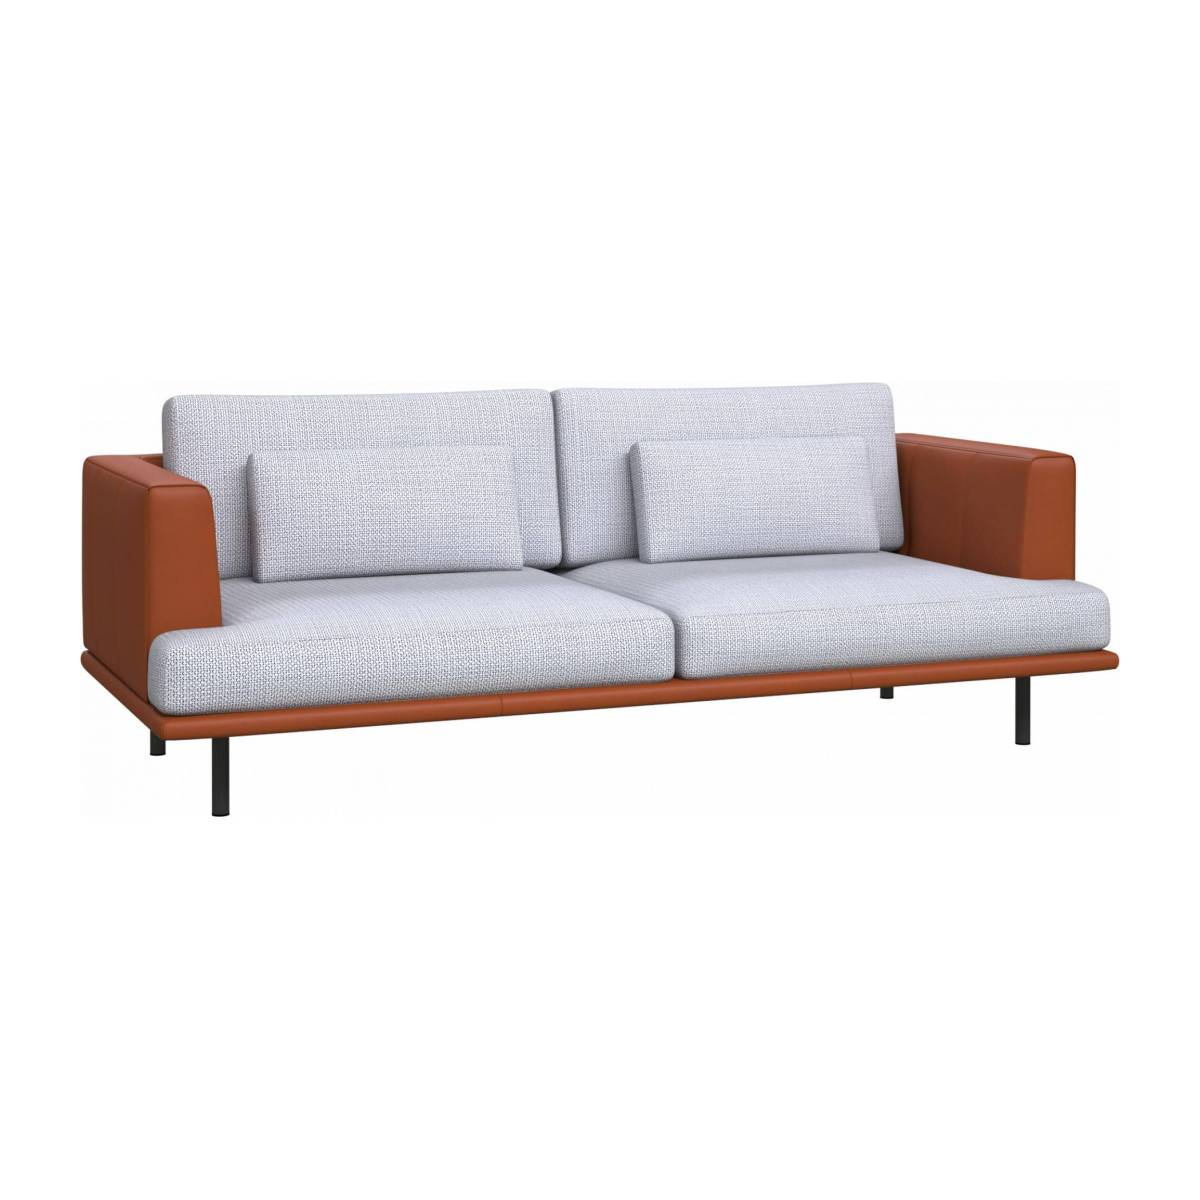 3 seater sofa in Fasoli fabric, grey sky with base and armrests in brown leather n°3